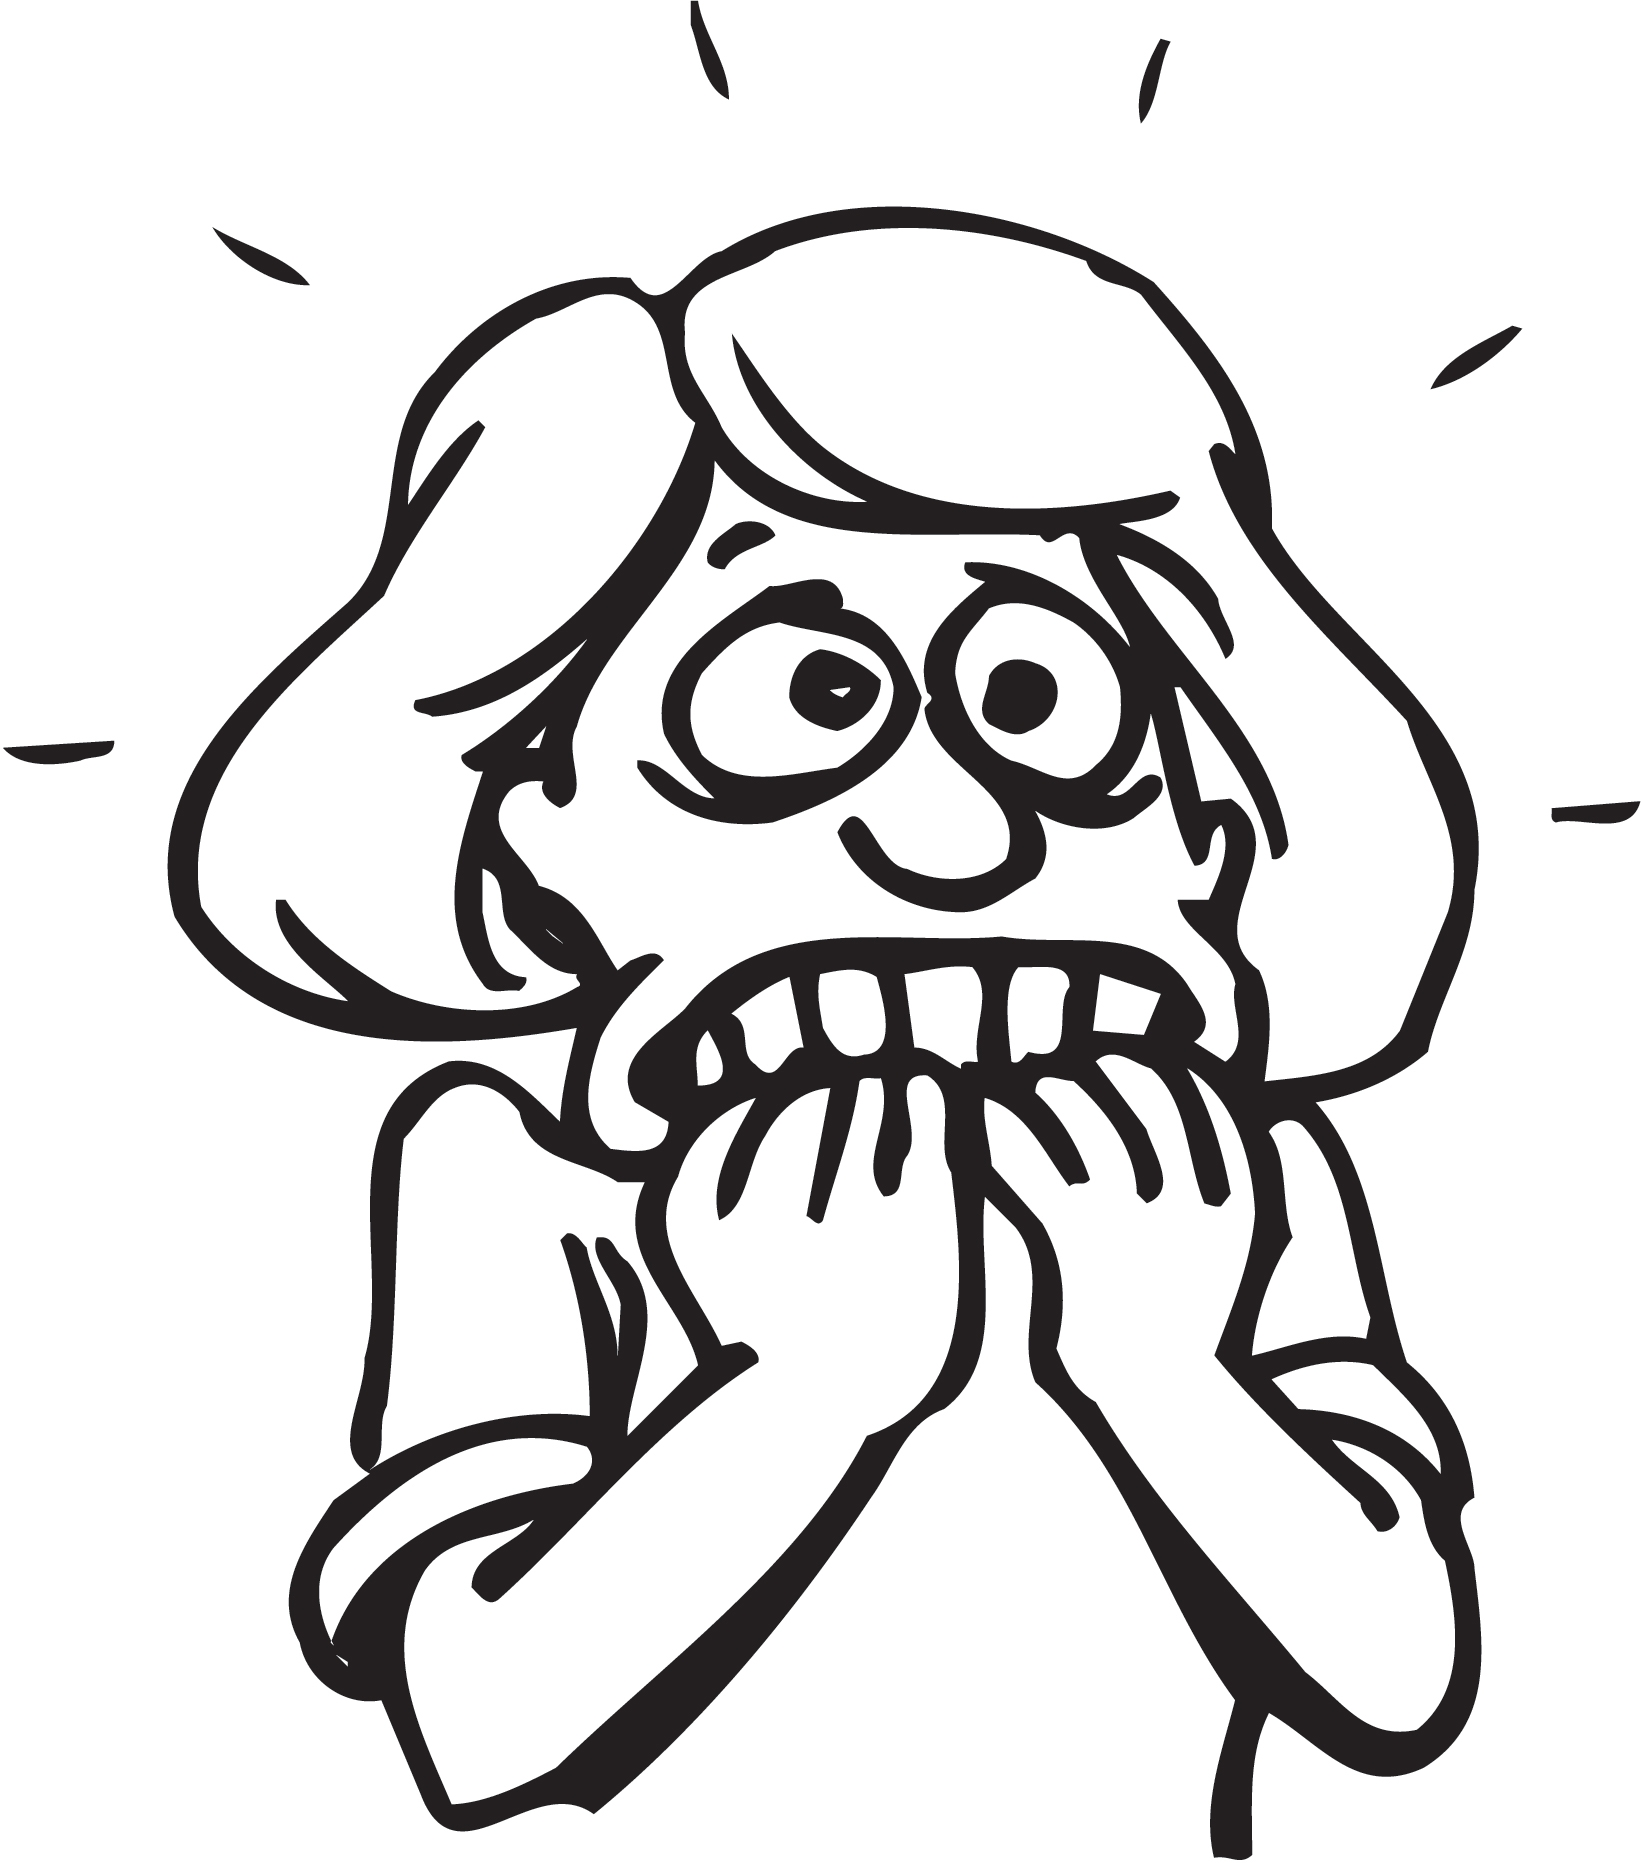 Clipart anxiety.